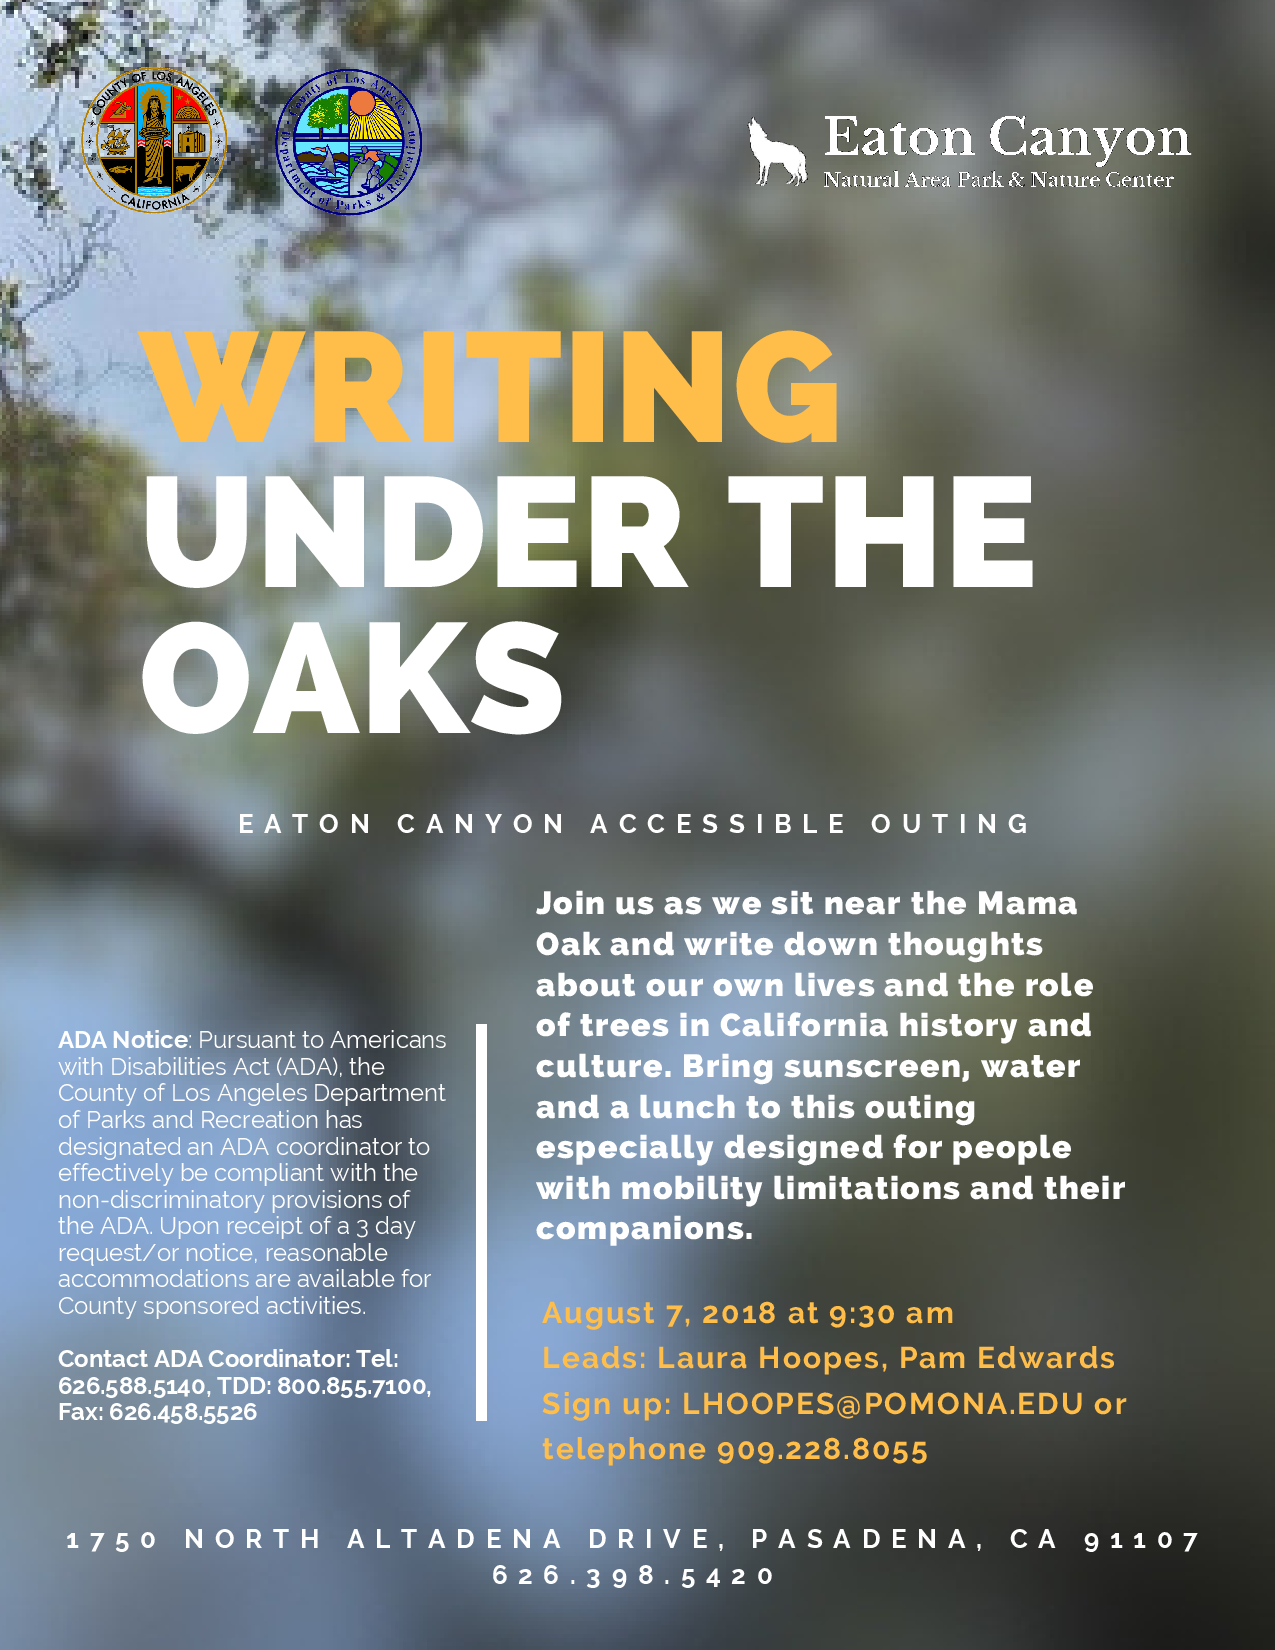 Writing Under the Oaks